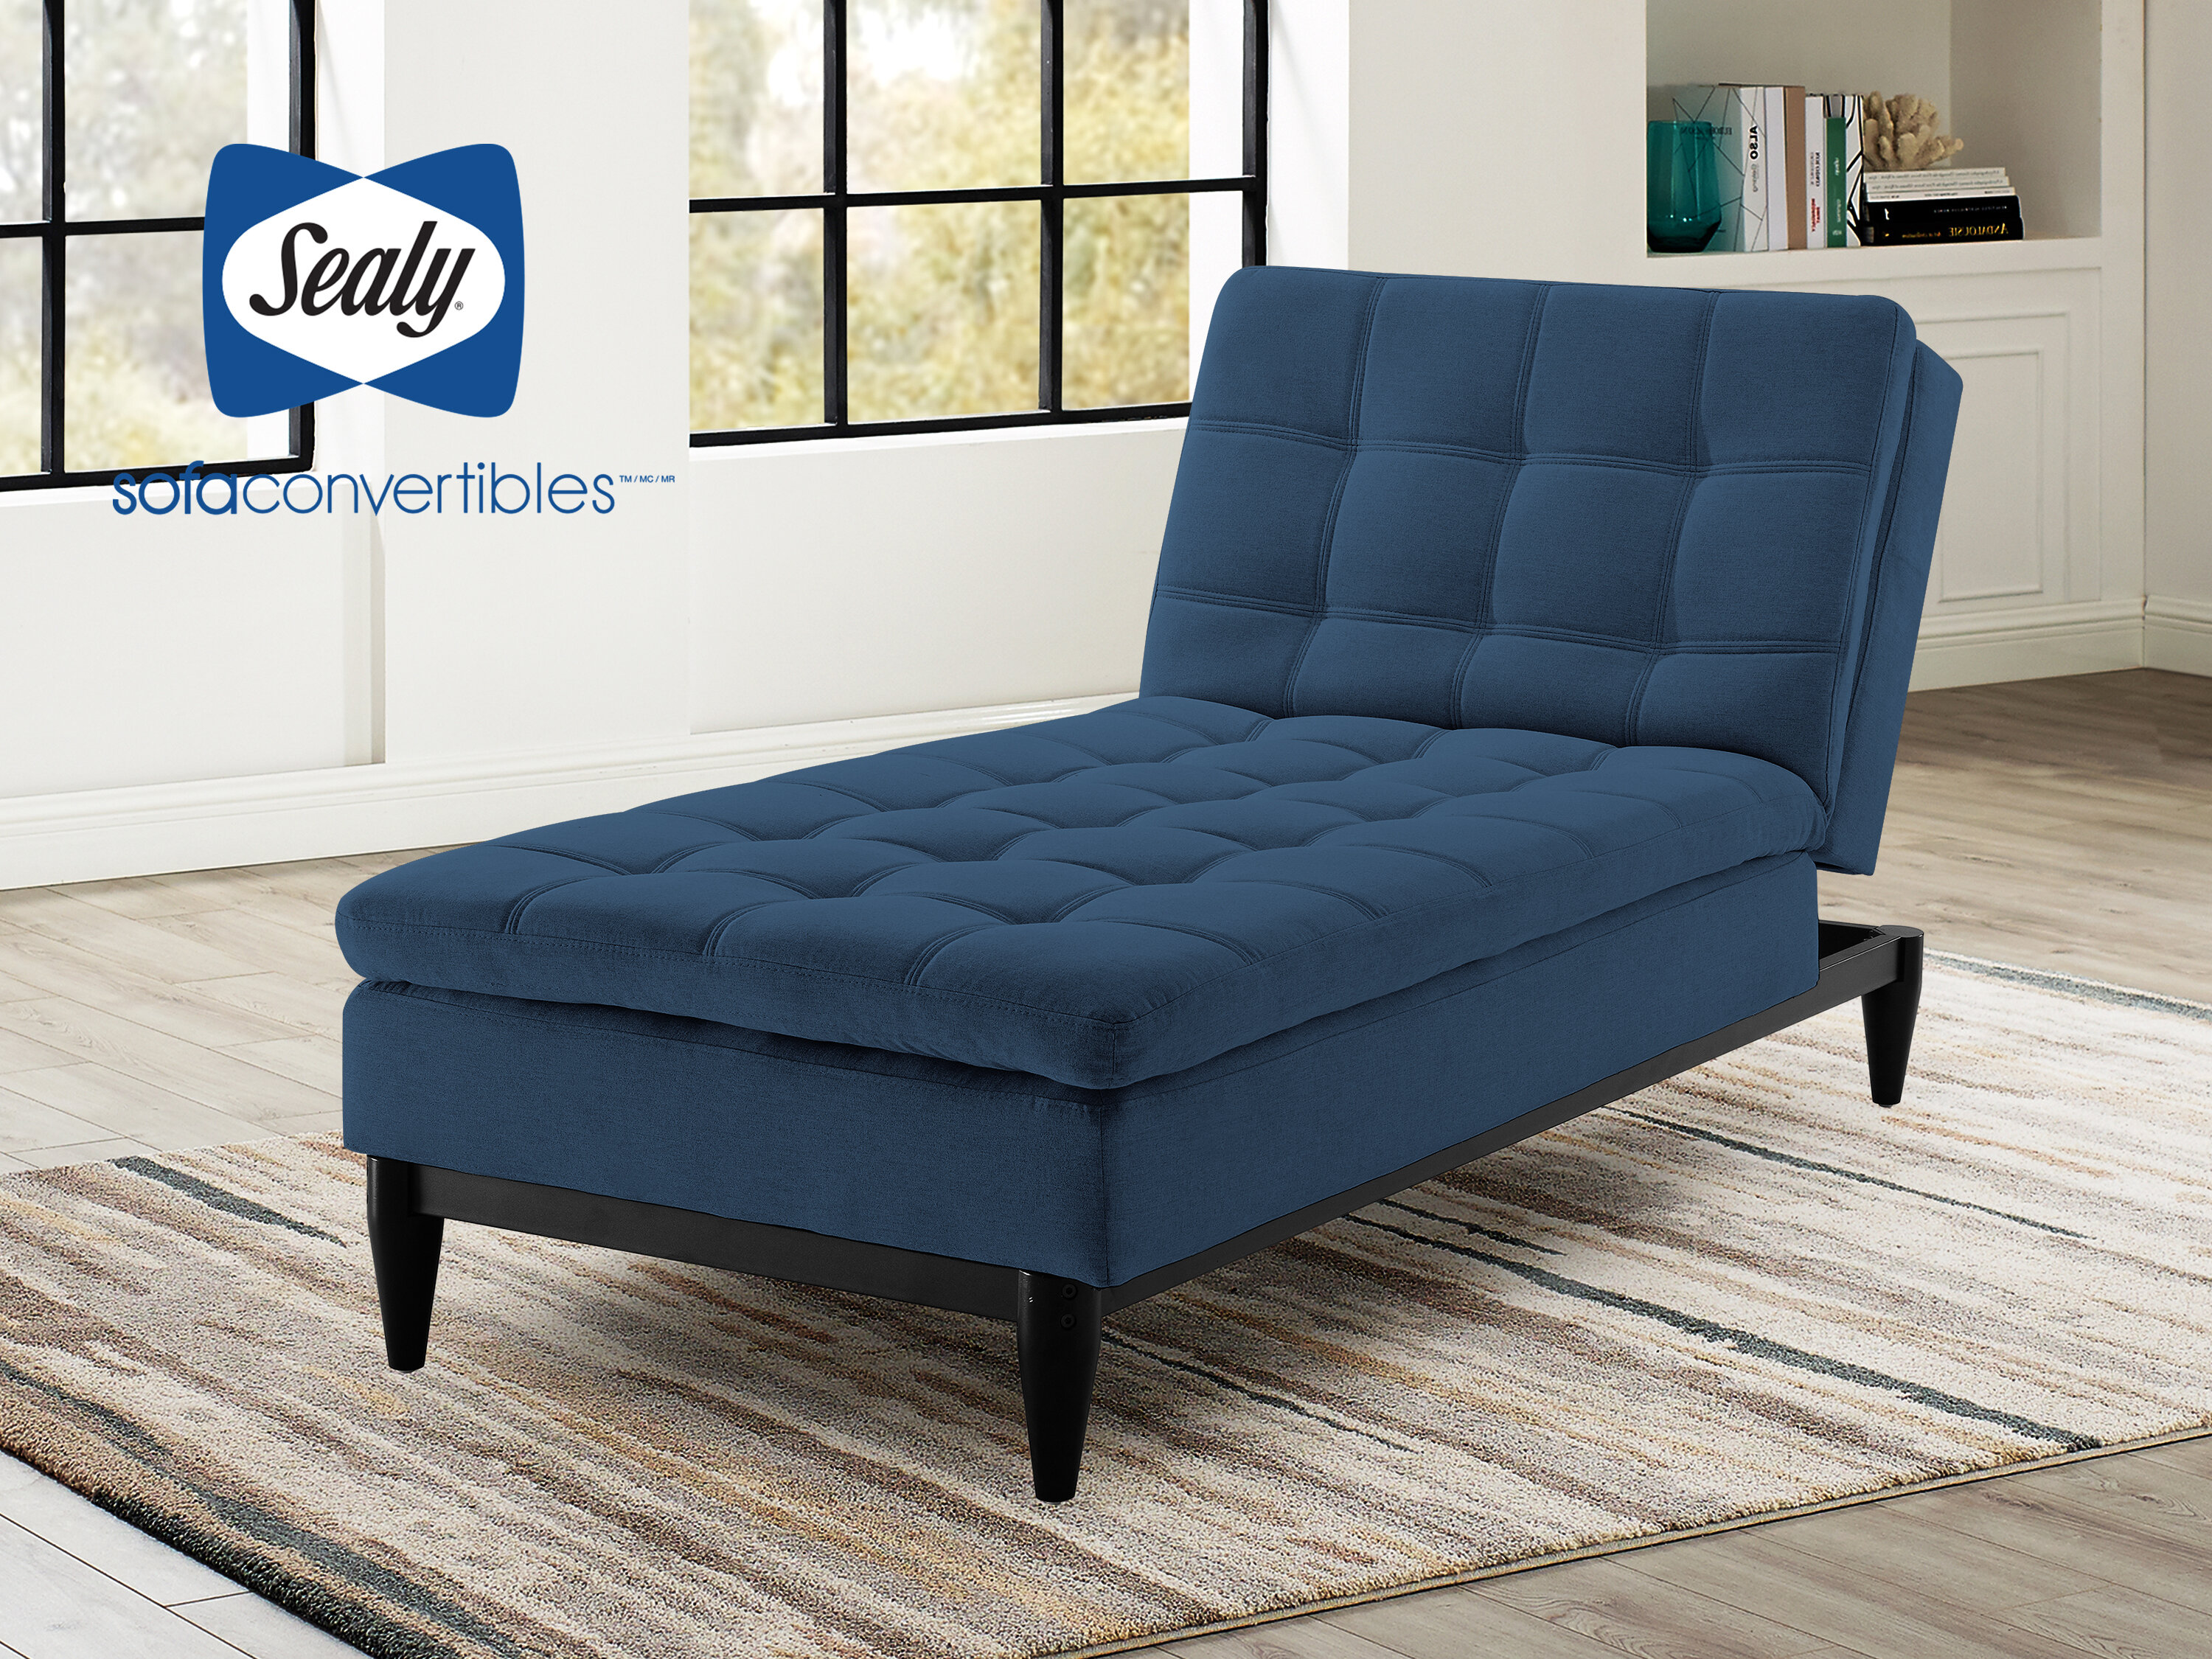 Sealy sofa convertibles montreal chaise lounge wayfair ca